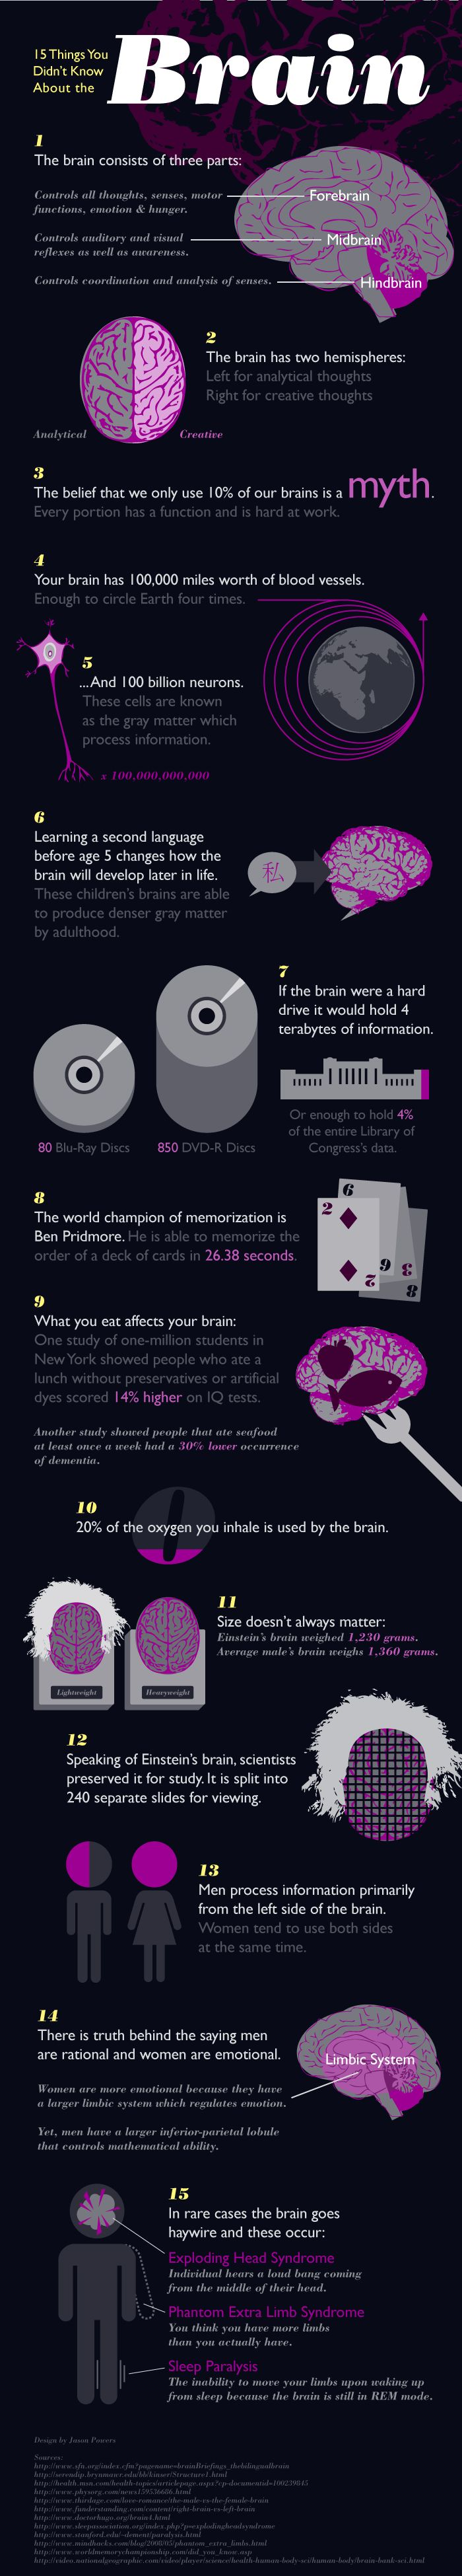 Top 15 Things About Brain.. by http://www.targetseo.com